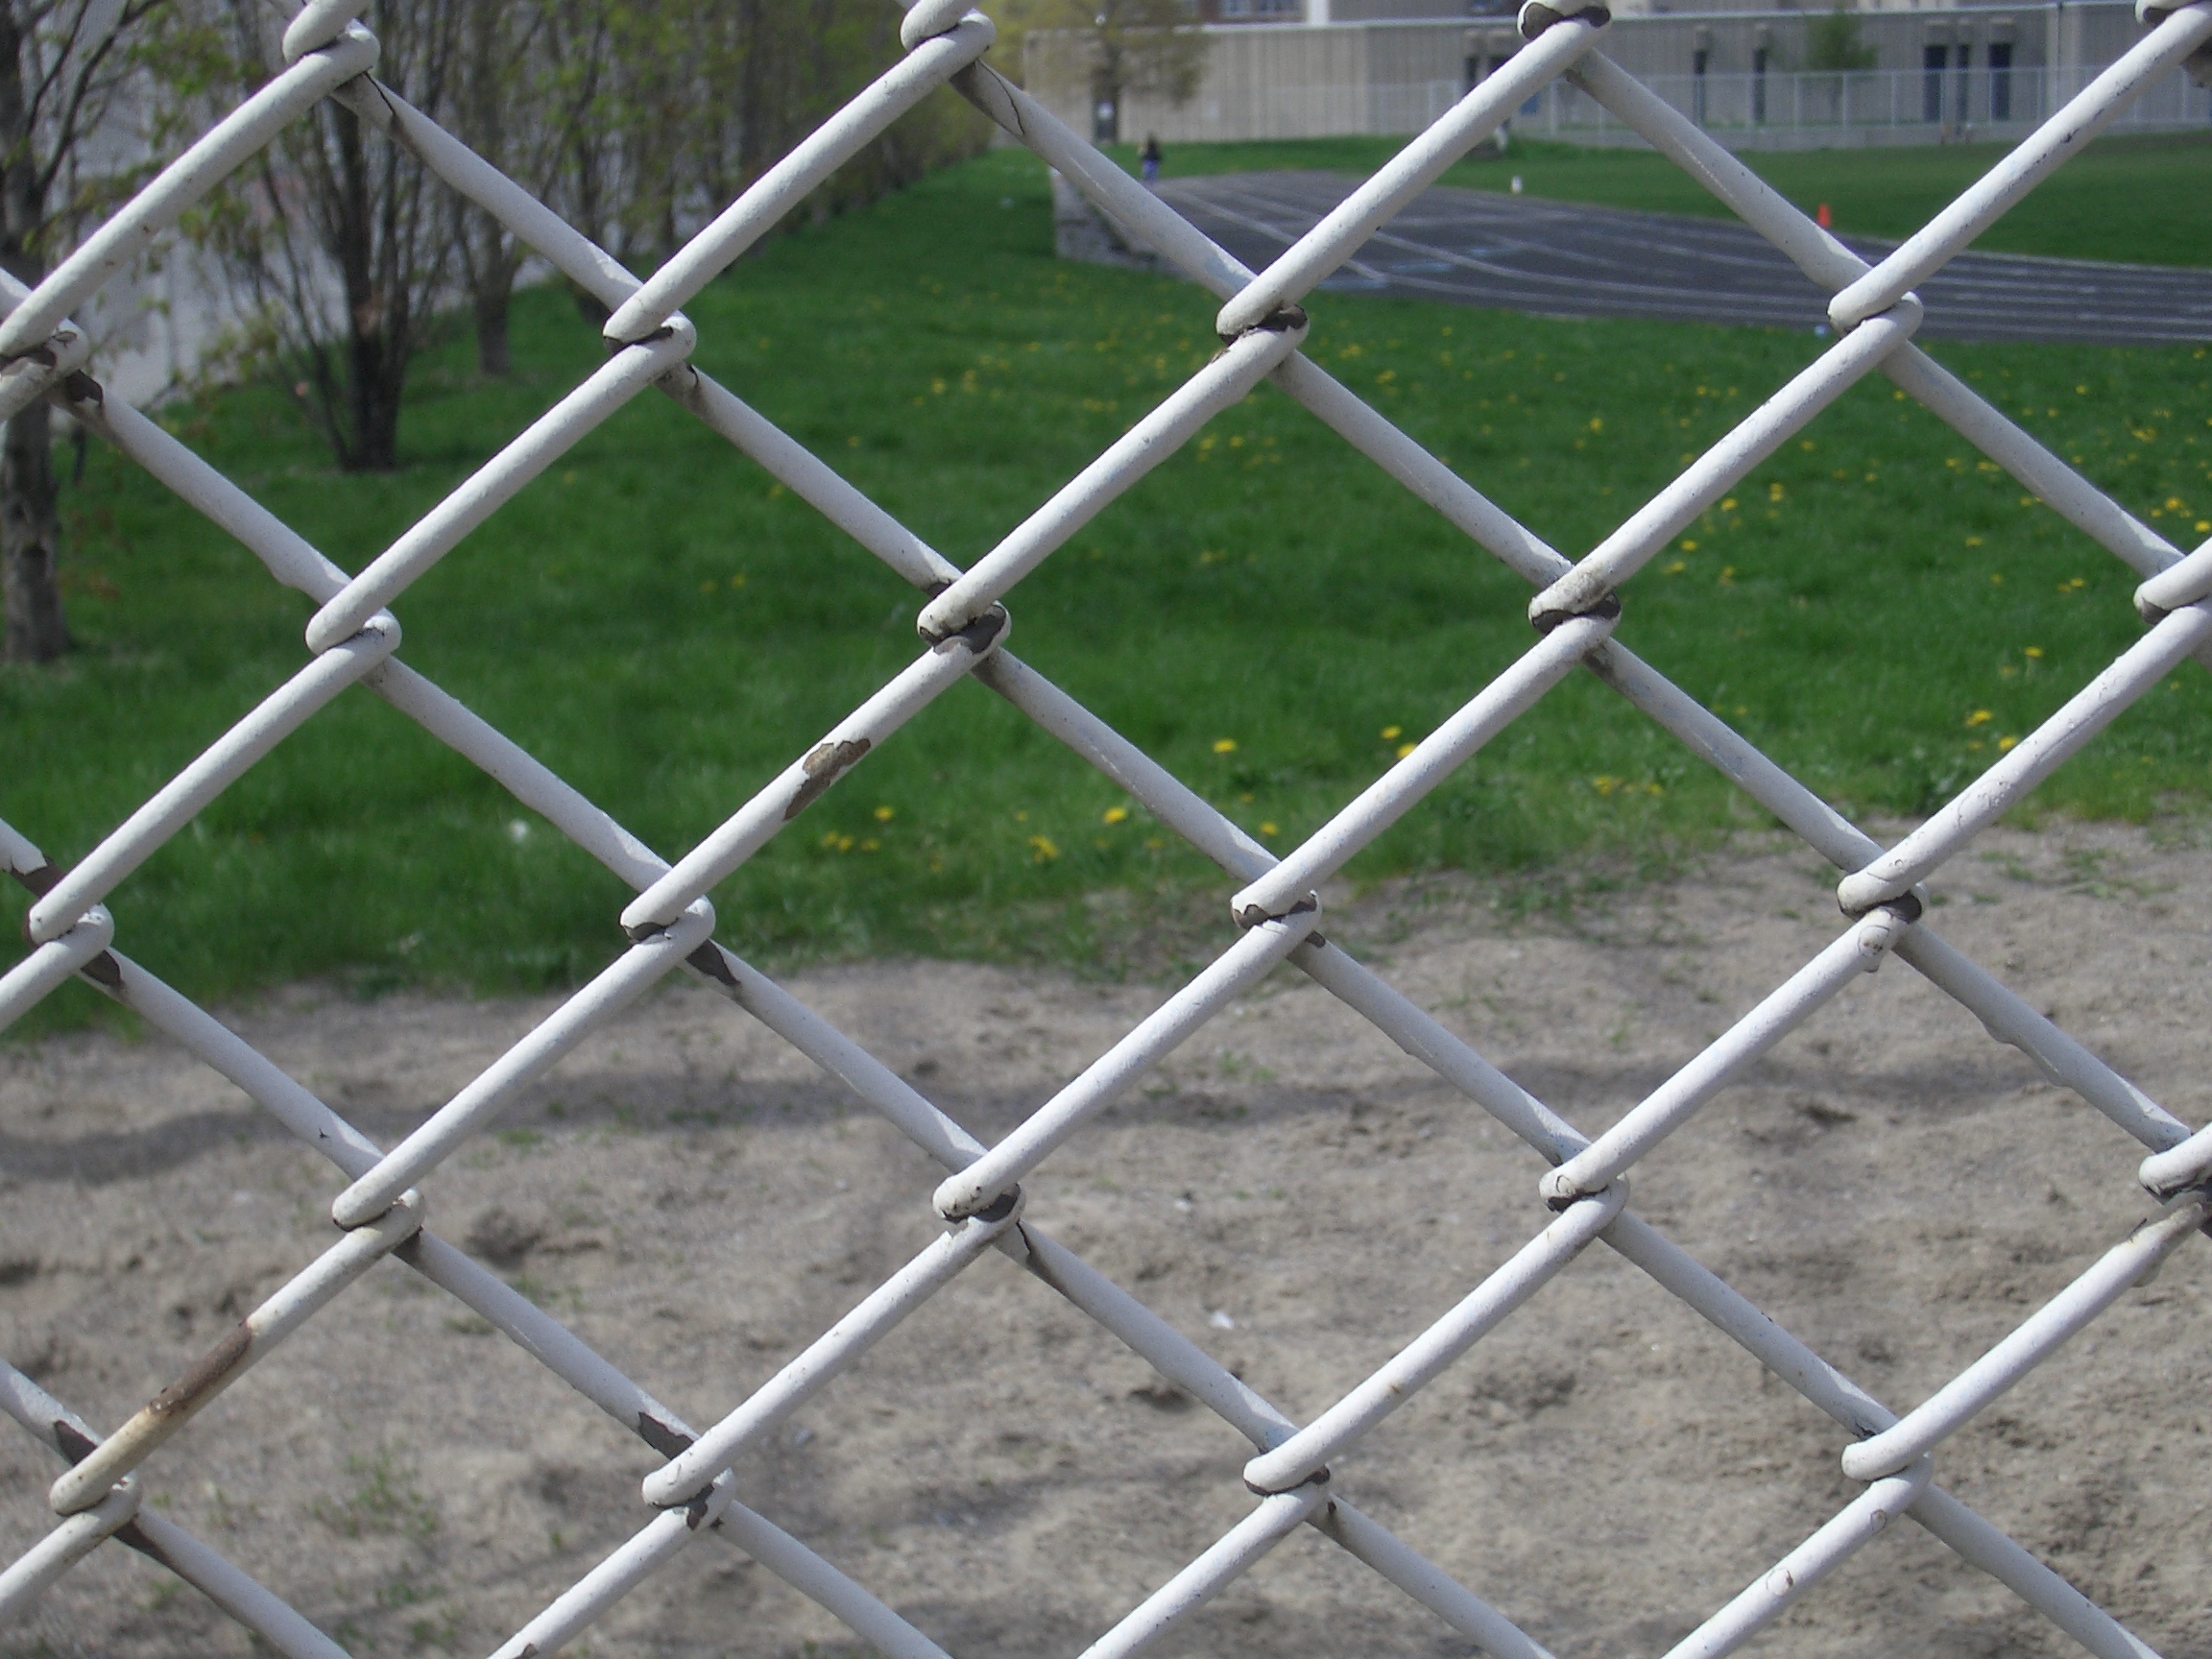 chain-link fence outside school 2 [image 2304x1728 pixels]